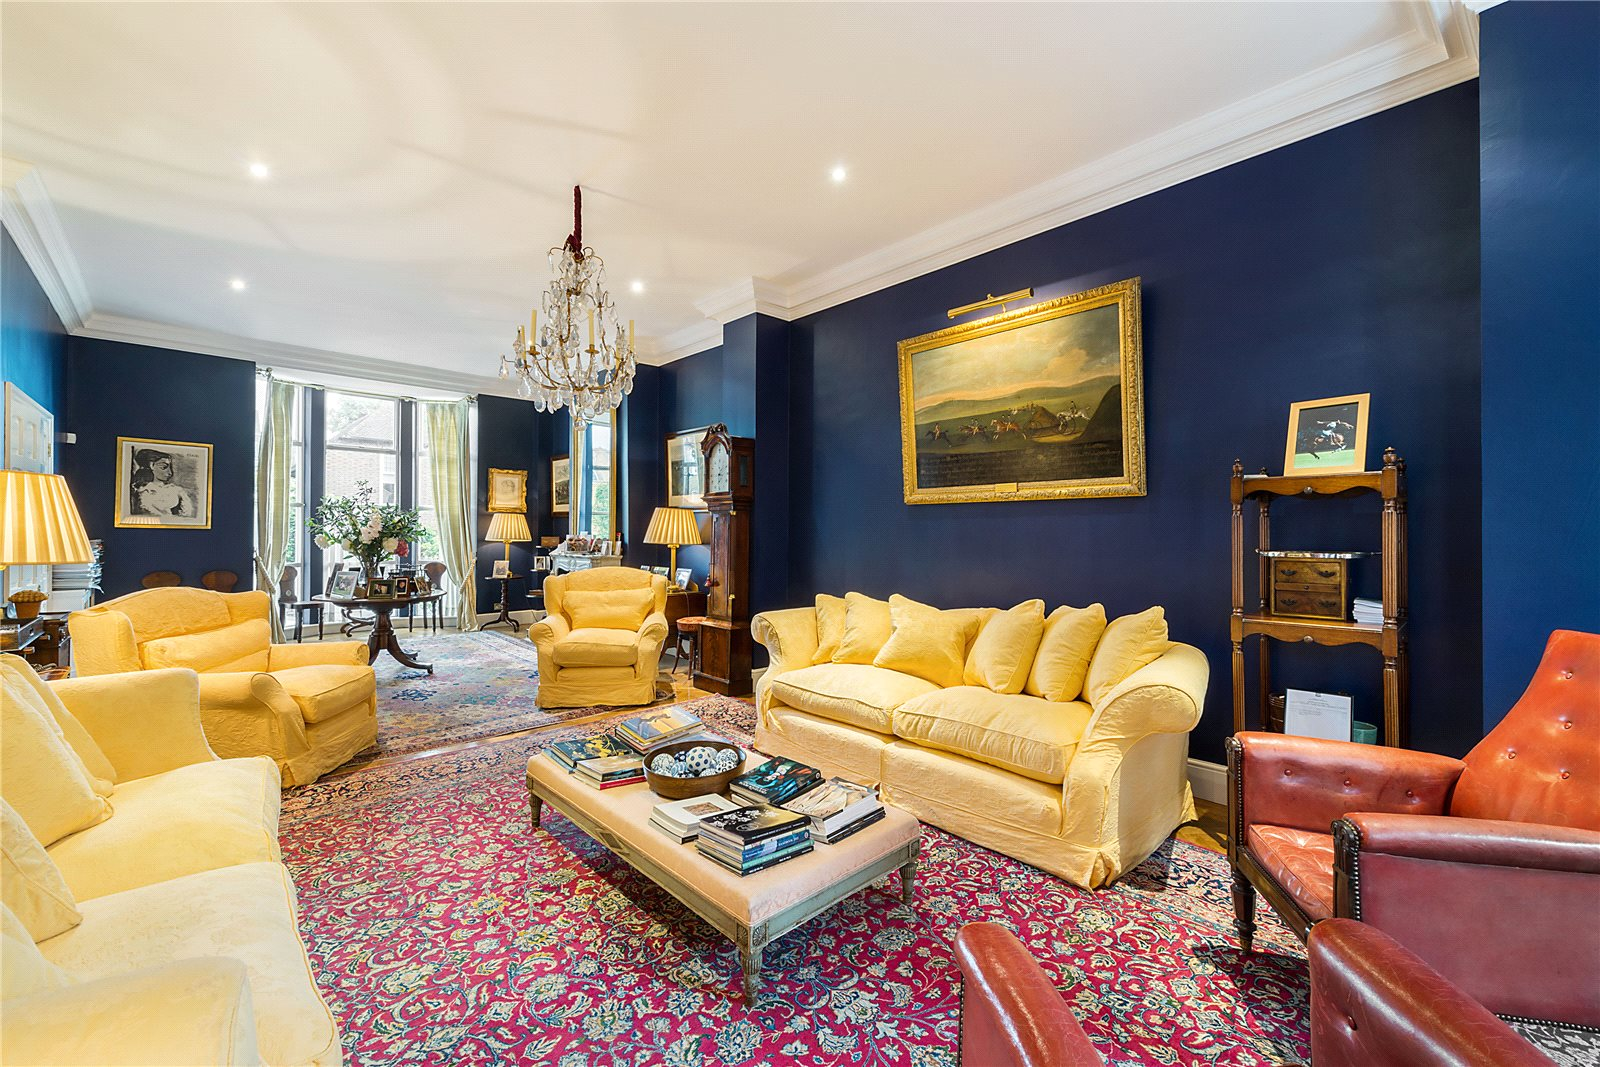 Single Family Home for Sale at Elm Park Road, Chelsea, London, SW3 Chelsea, London, England